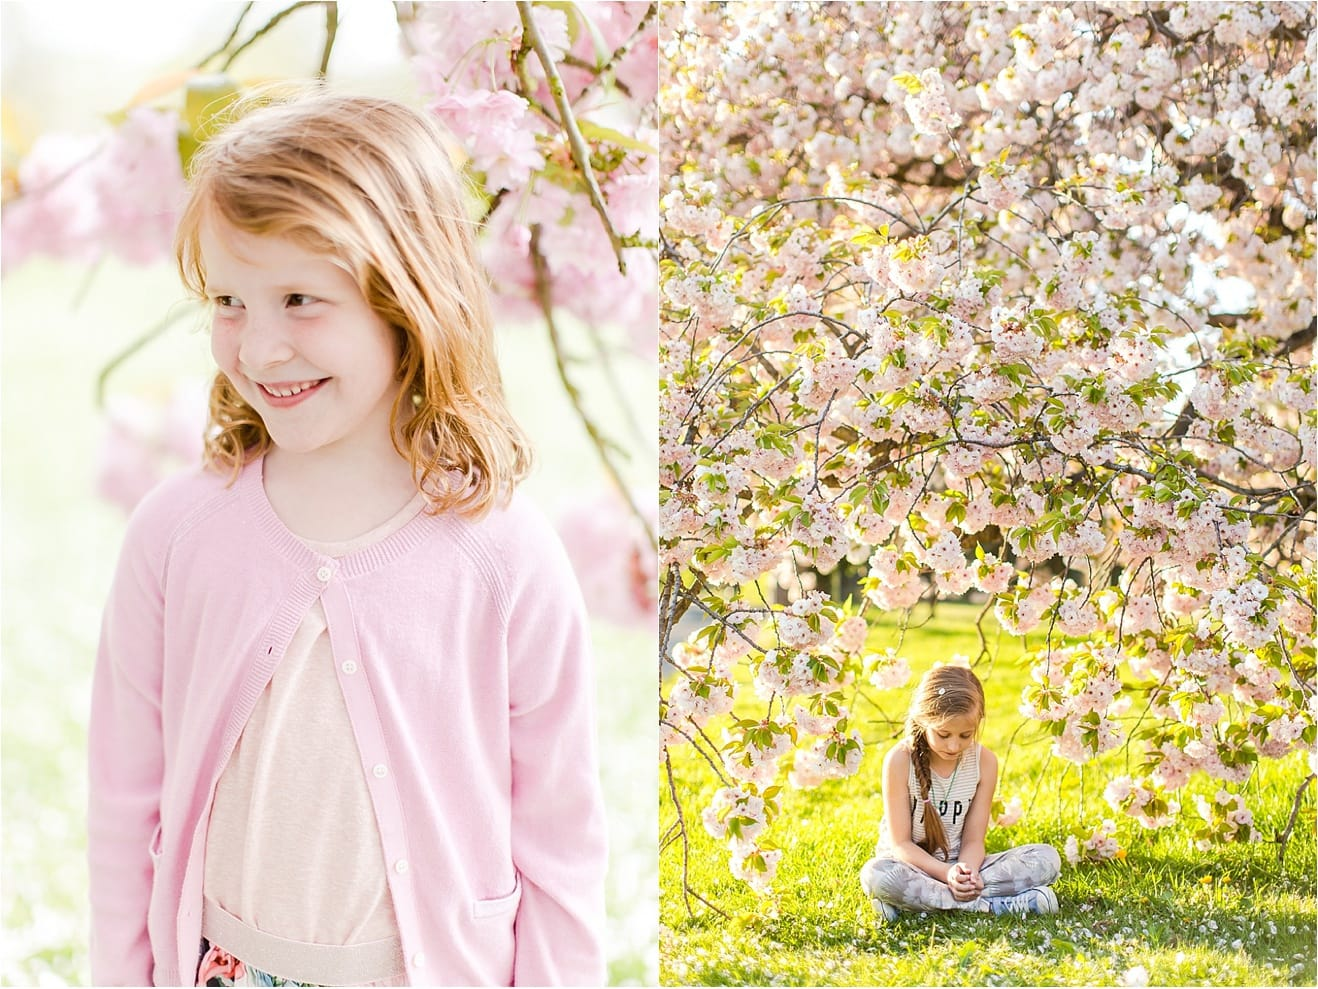 18-mini-session-spring-photography-Eddie-Judd-Photography-2